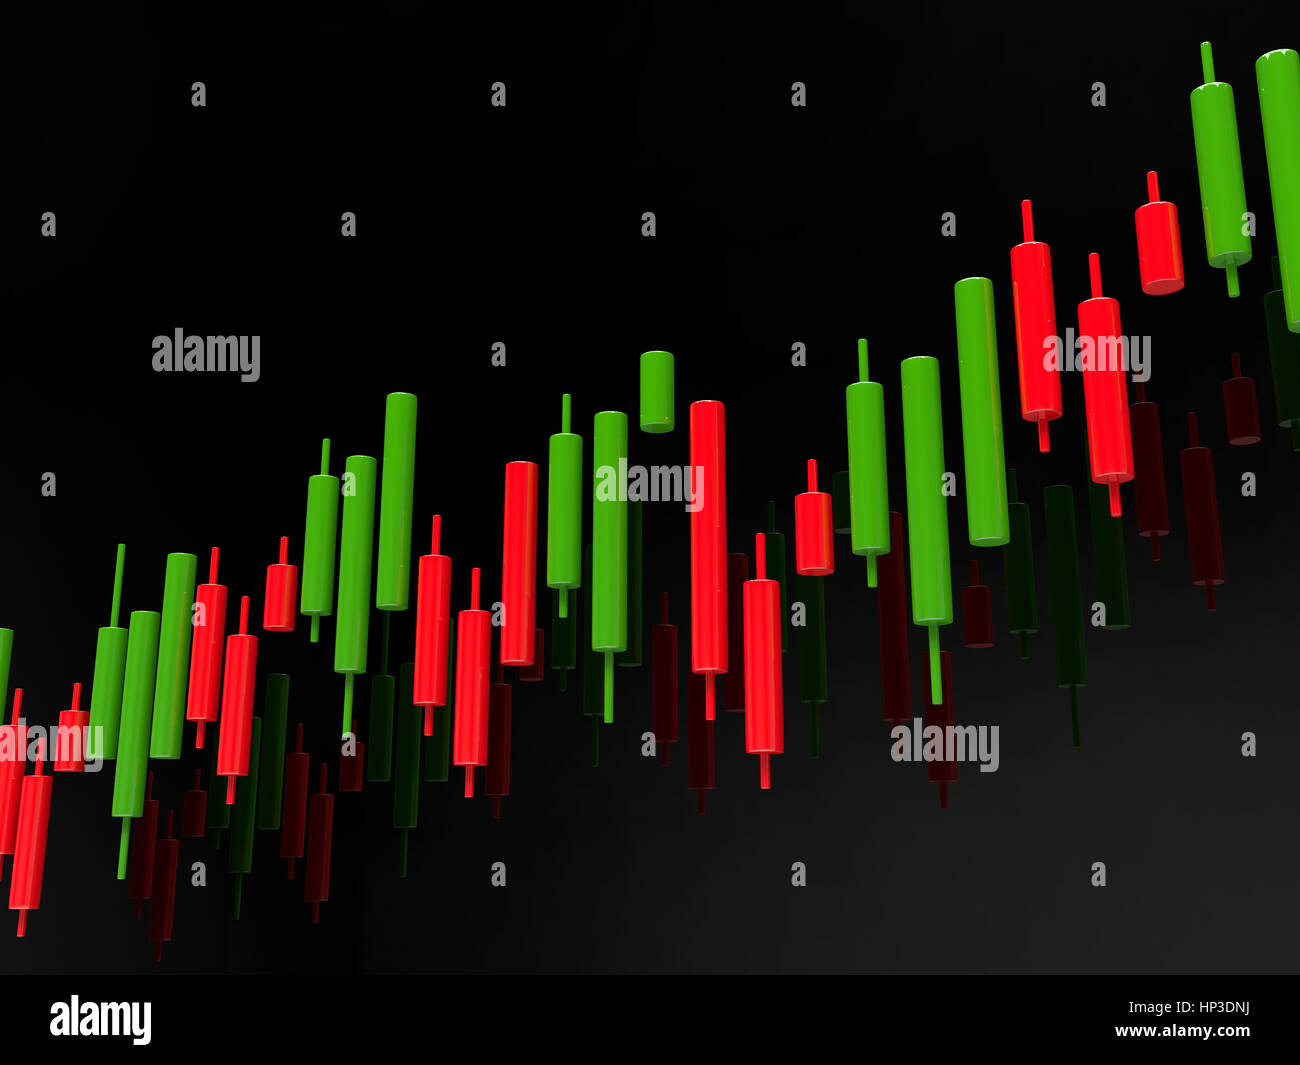 3d rendering of forex index candlestick chart over dark background - Stock Image